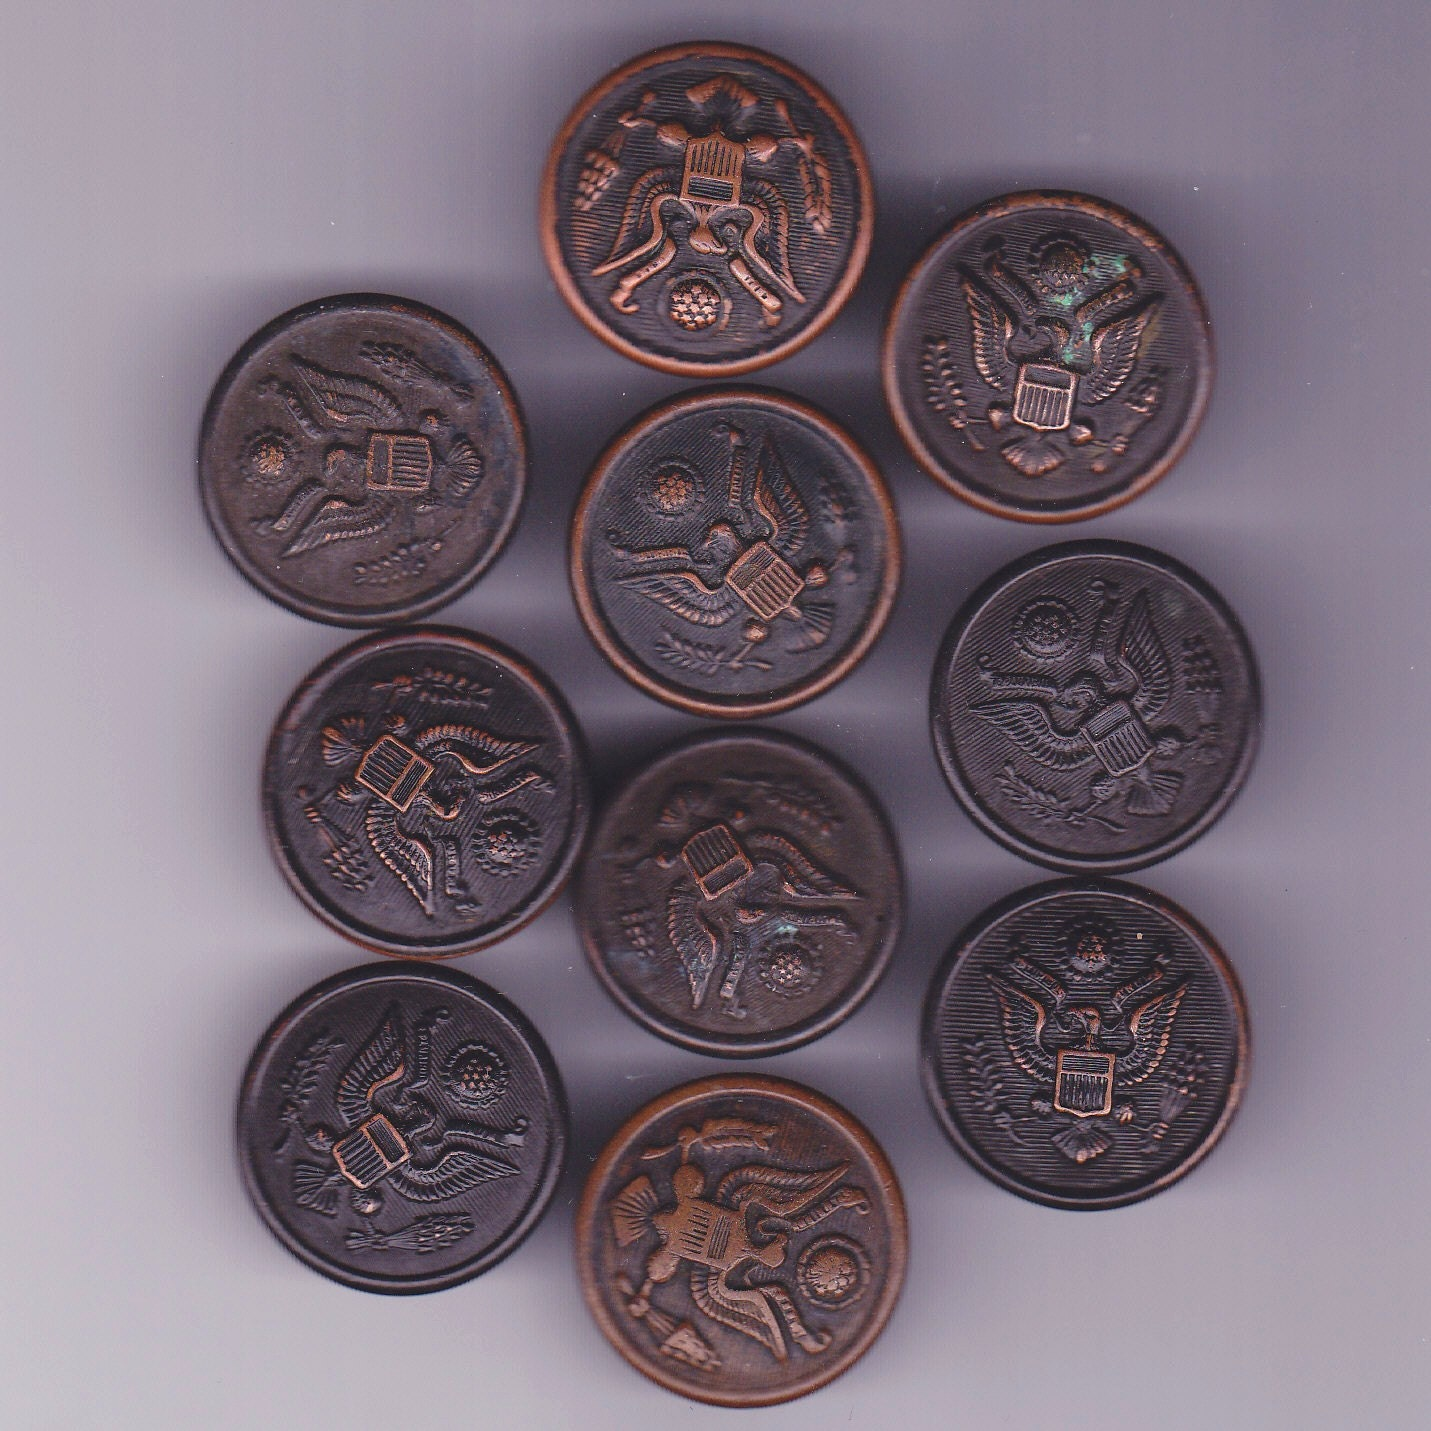 Ten Vintage Military Metal Eagle Buttons by antiquario on Etsy